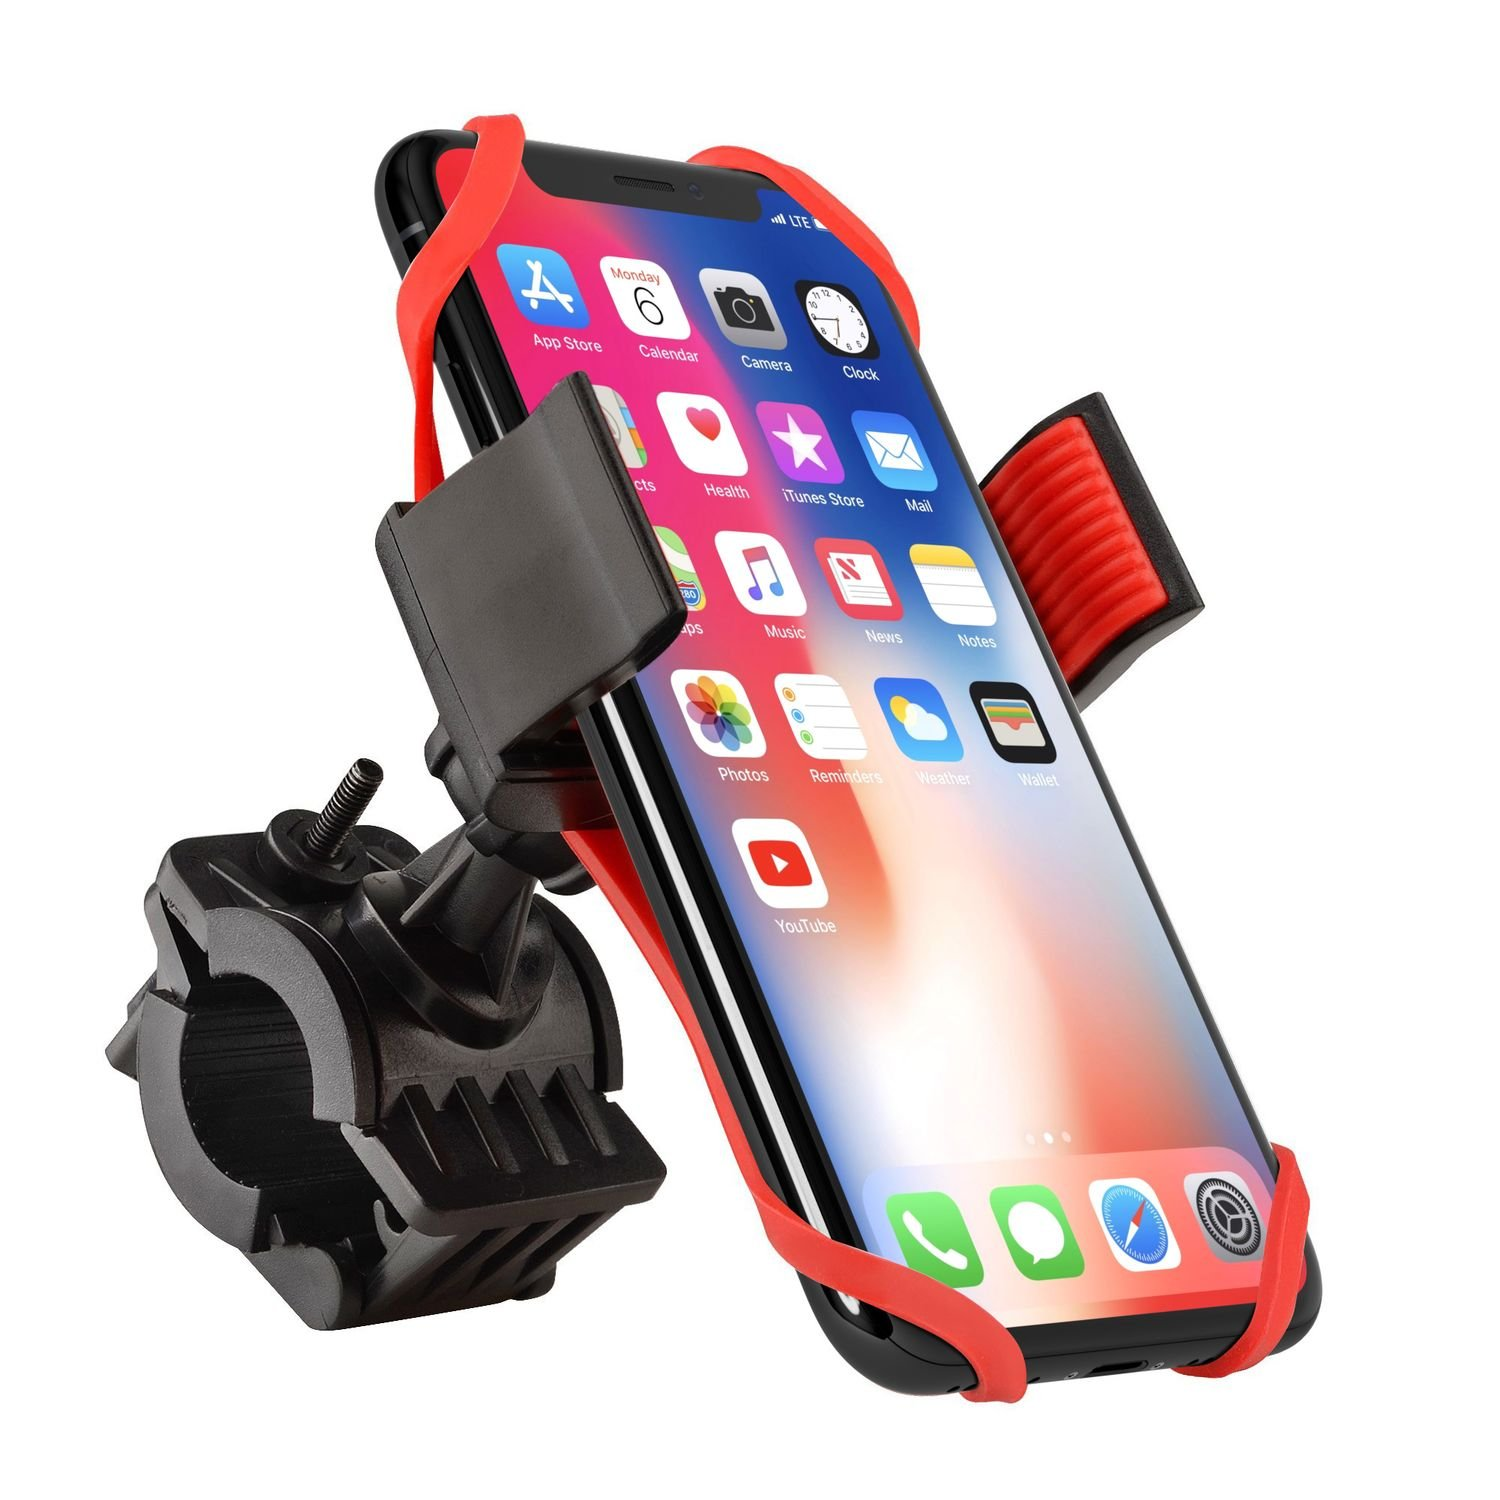 Bike Mount, Insten Bicycle Motorcycle MTB Bike Rack Handlebar Mount Phone Holder Cradle W/Secure Grip For iPhone X/XS /XS Max/XR/8 Plus/7 Plus/6S, Galaxy S9/S9+/S8/S8+/On5/S7 Edge/S7,LG V10, Black eForCity 2195264